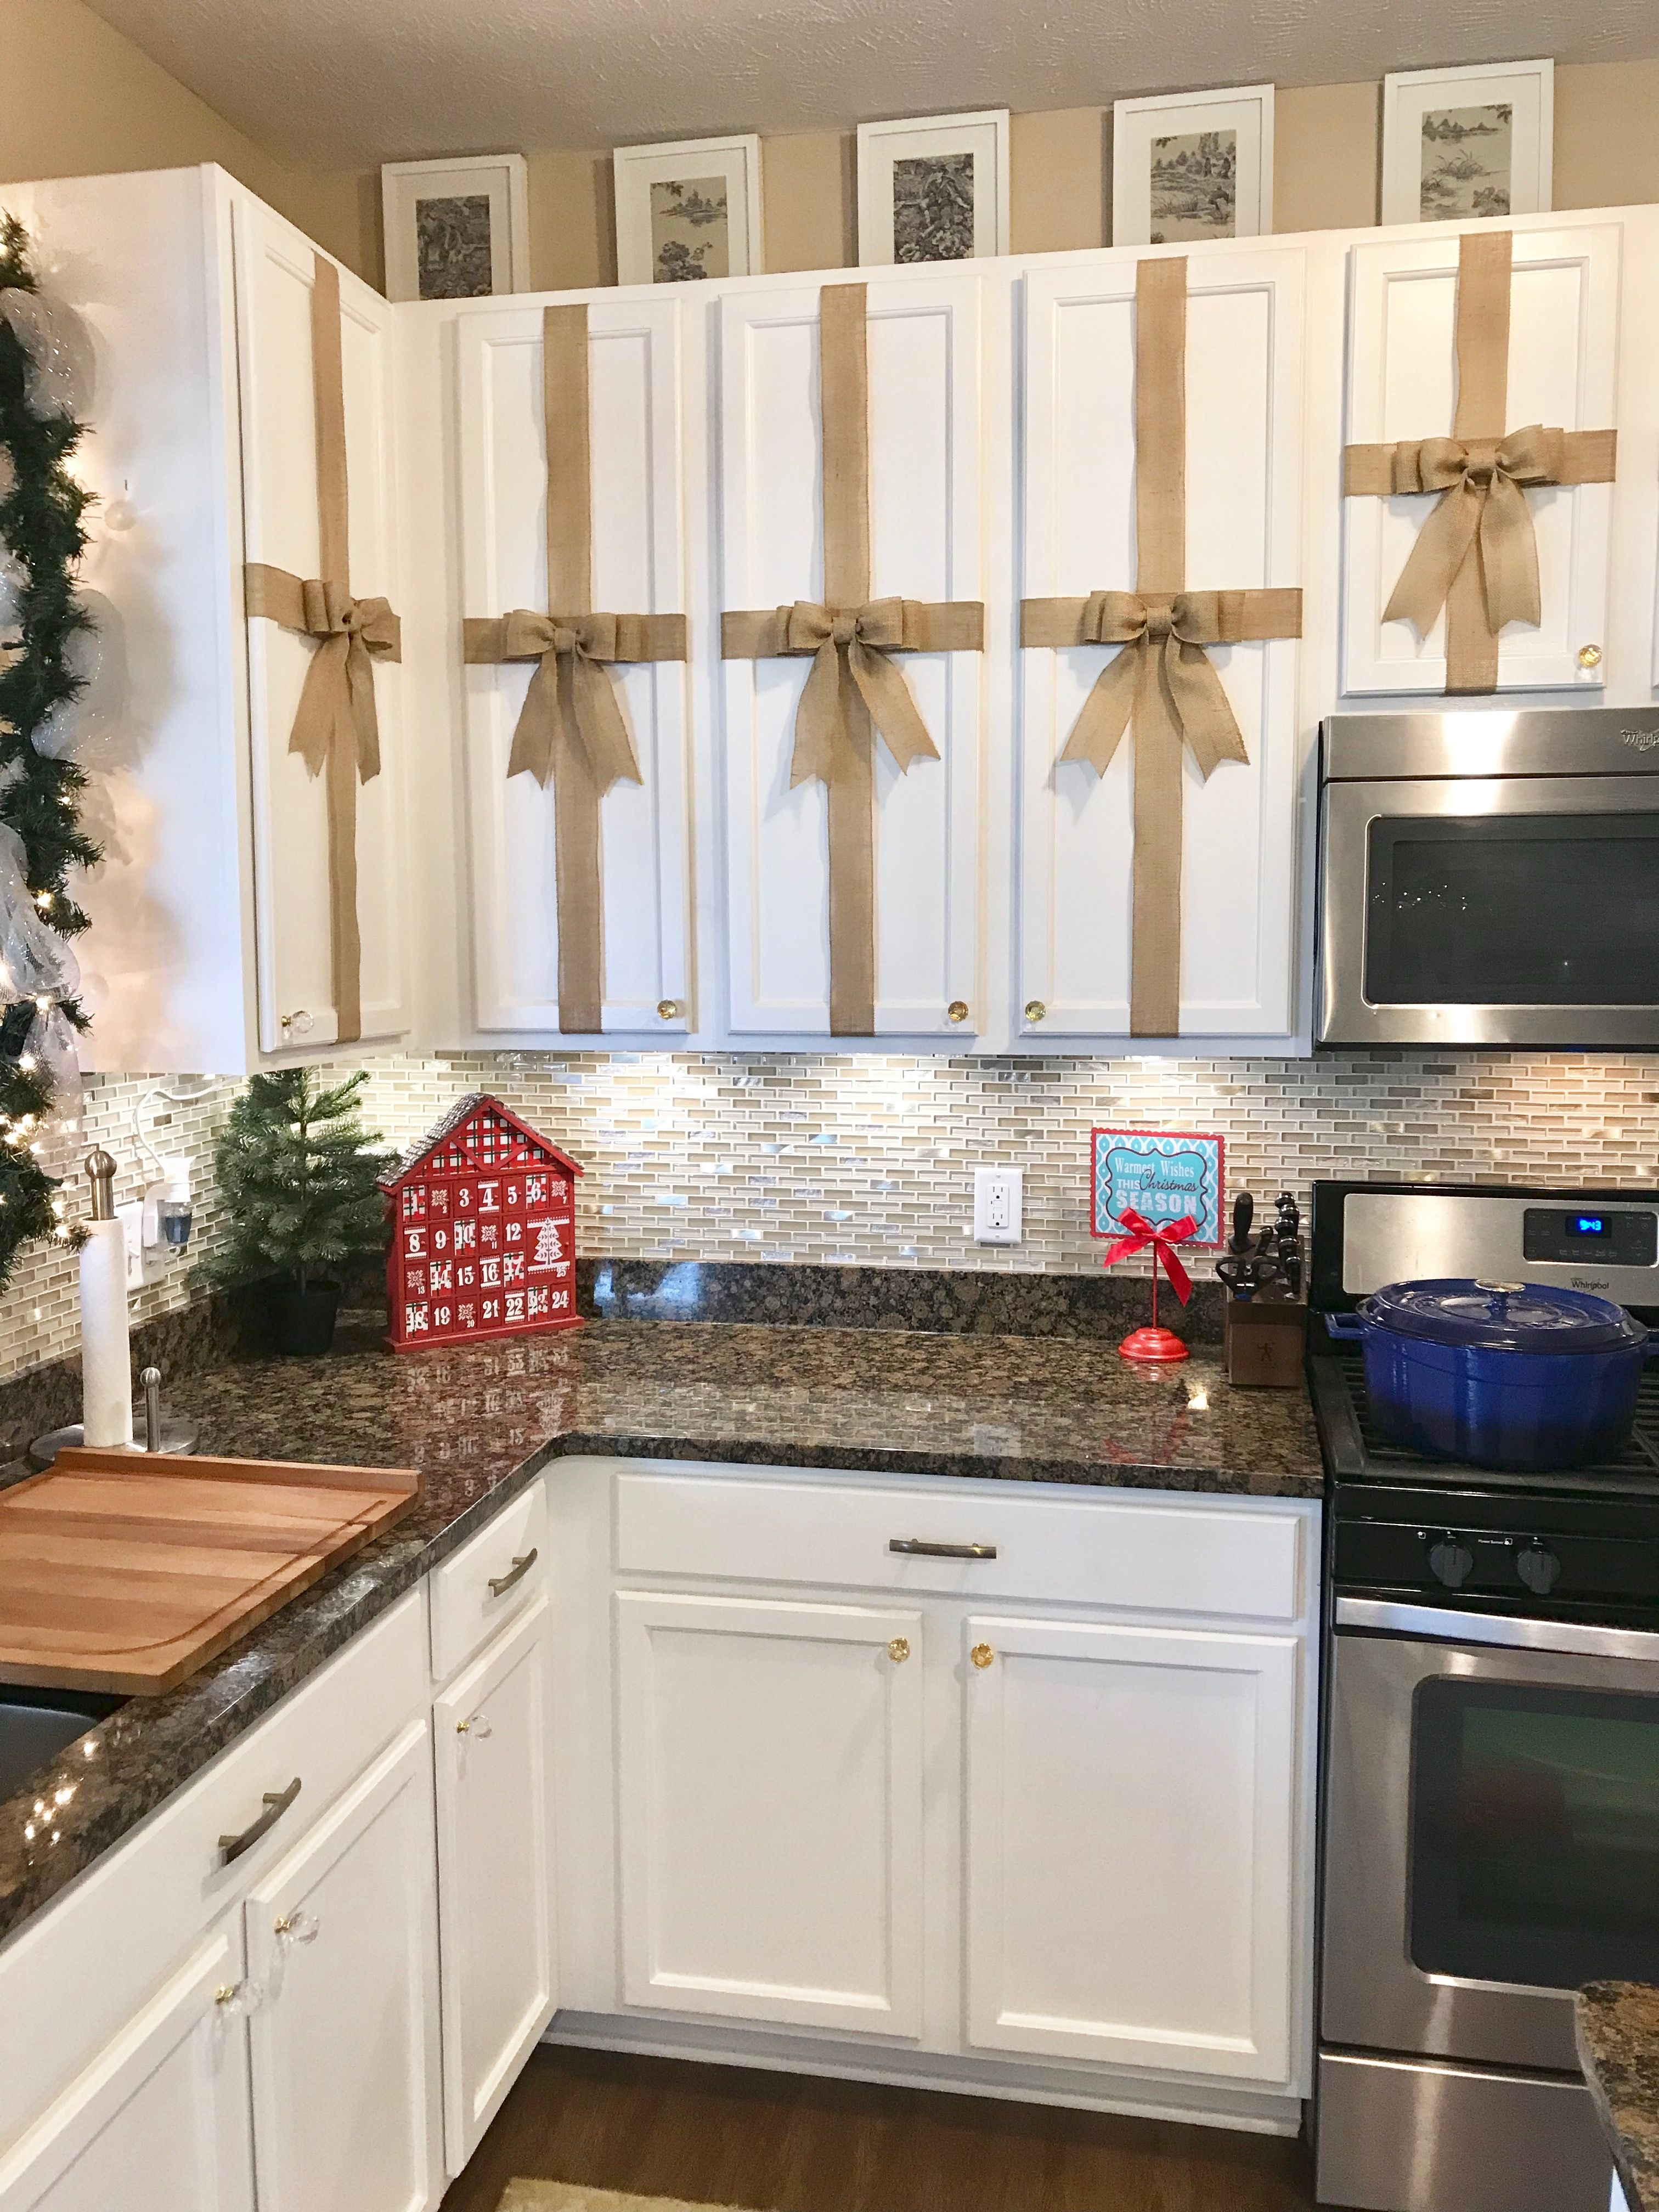 Diy Burlap Bows For Kitchen Cabinets For Christmas Decor Kitchen